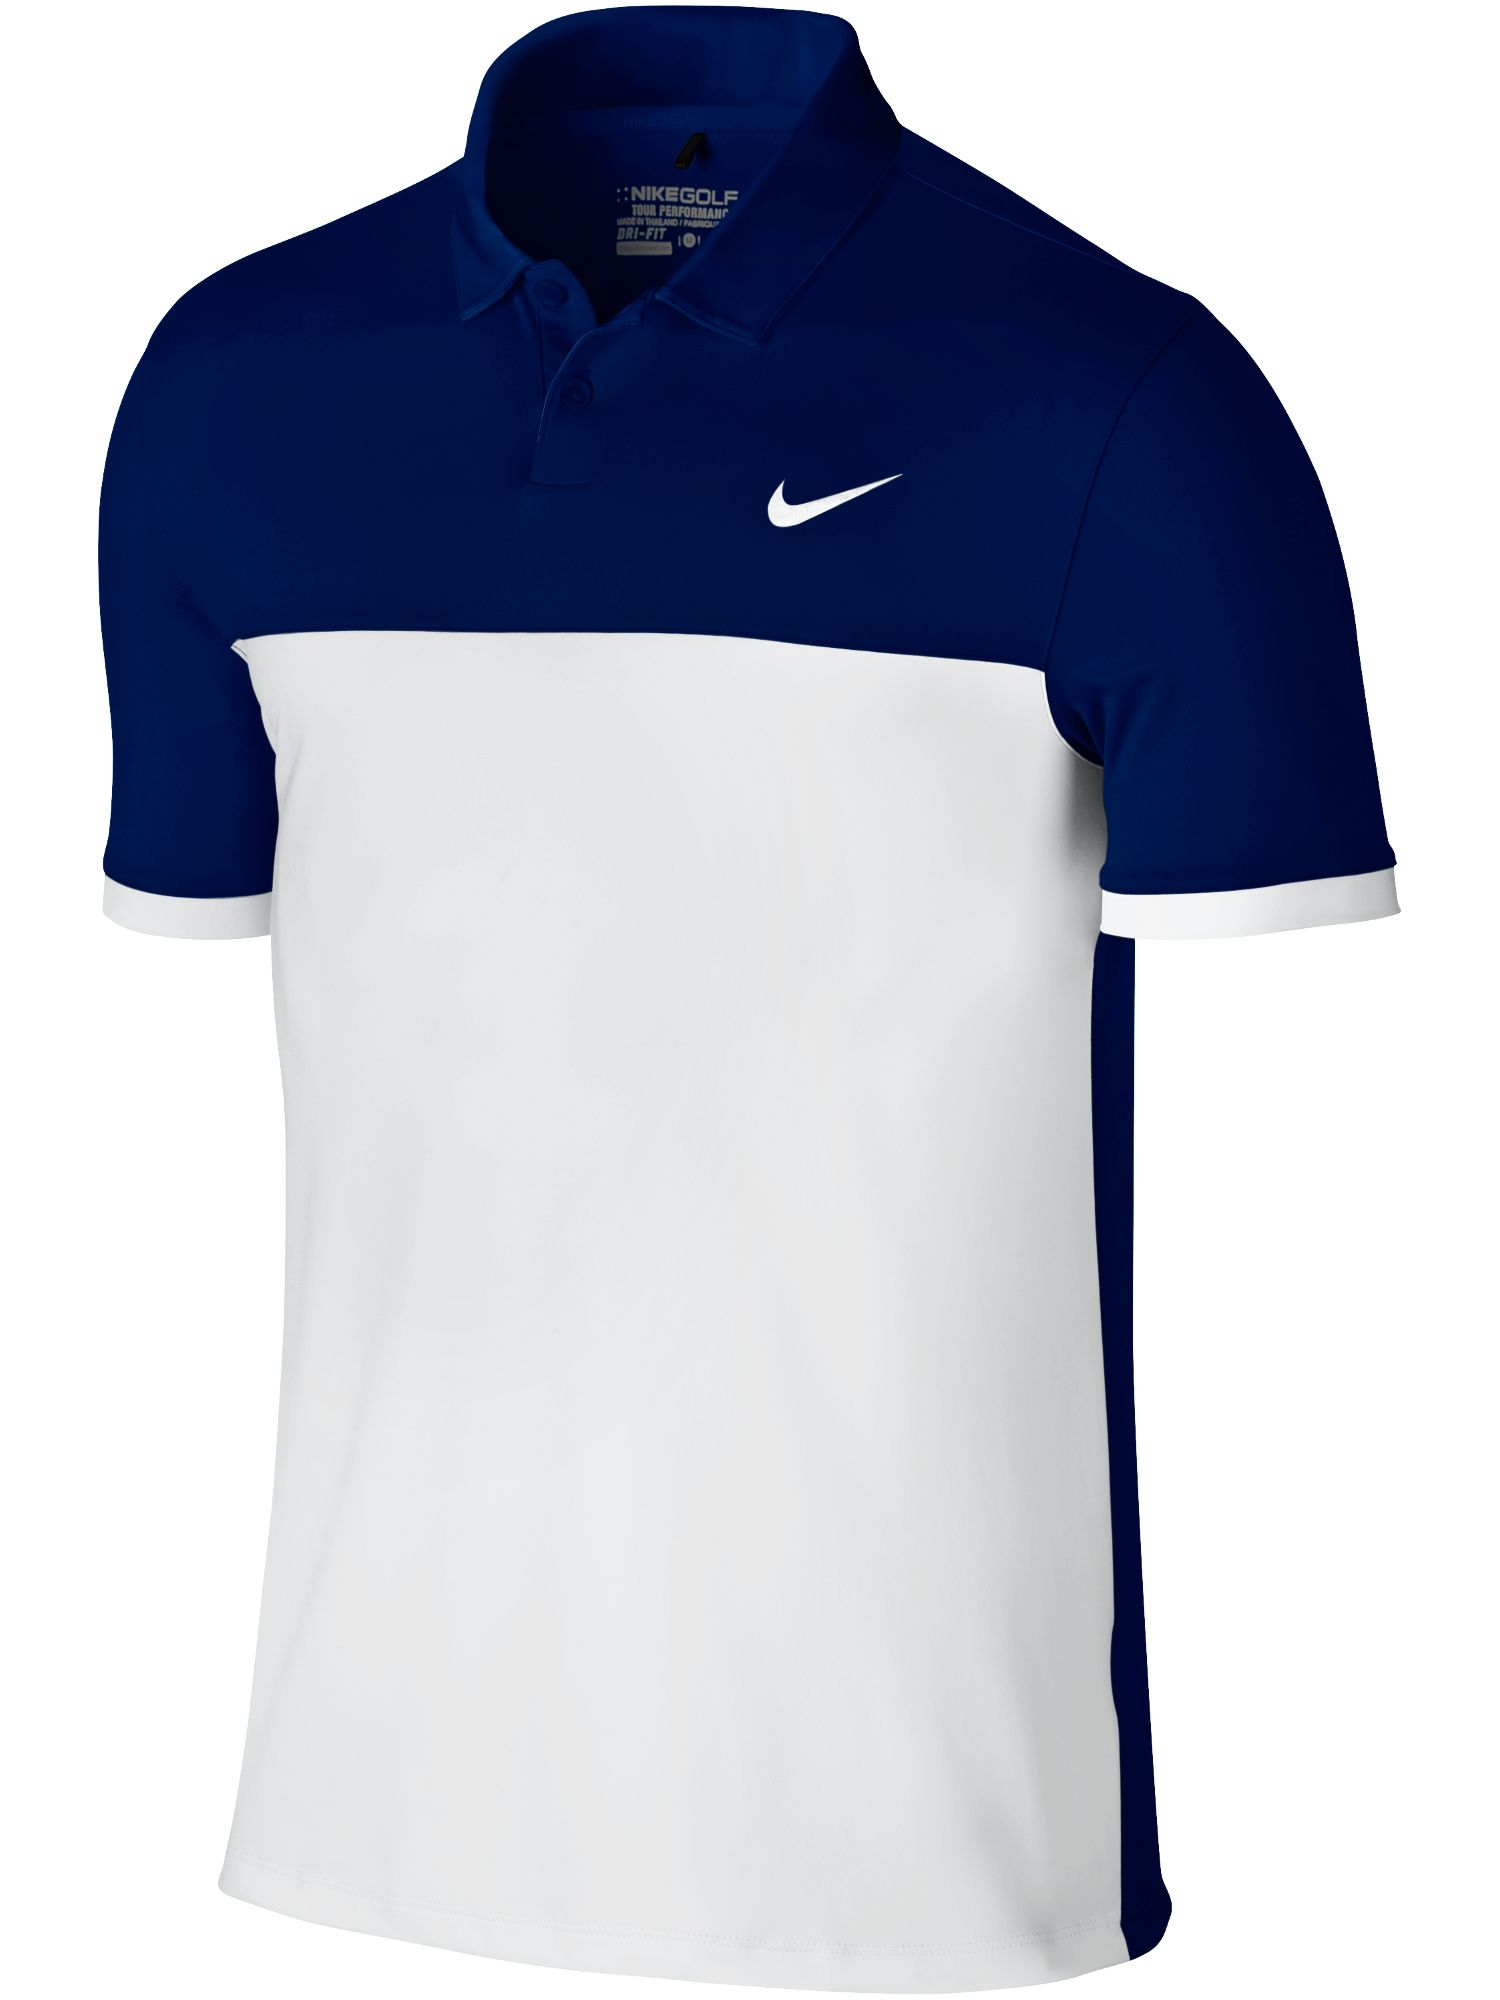 Men's Nike Golf Icon Color Block Polo, Blue